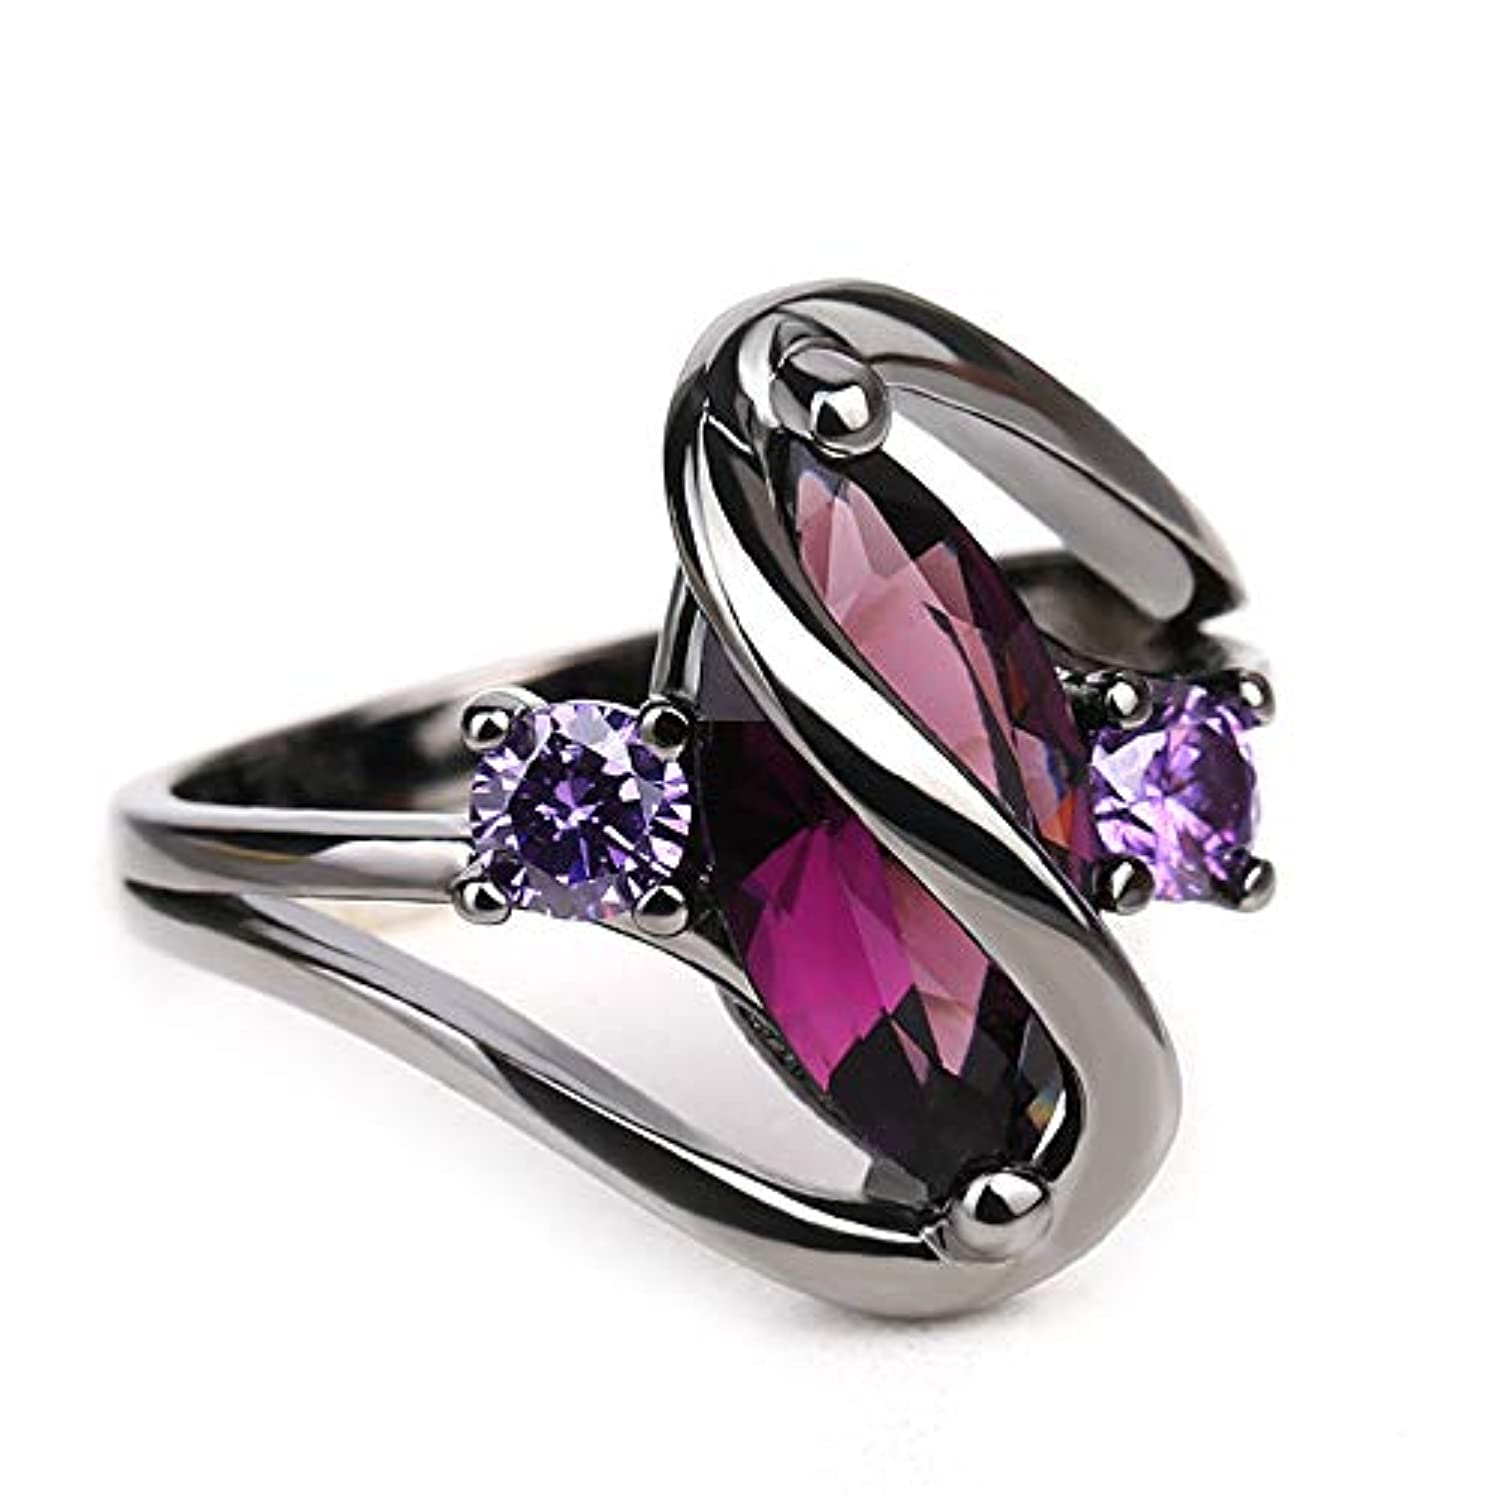 MAIHAO Hot Fashion Luxury Vintage Purple Zircon CZ Crystal Colorful Rings for Women Wedding Engagement Jewelry Rings Size(6-10) (US Code 8)